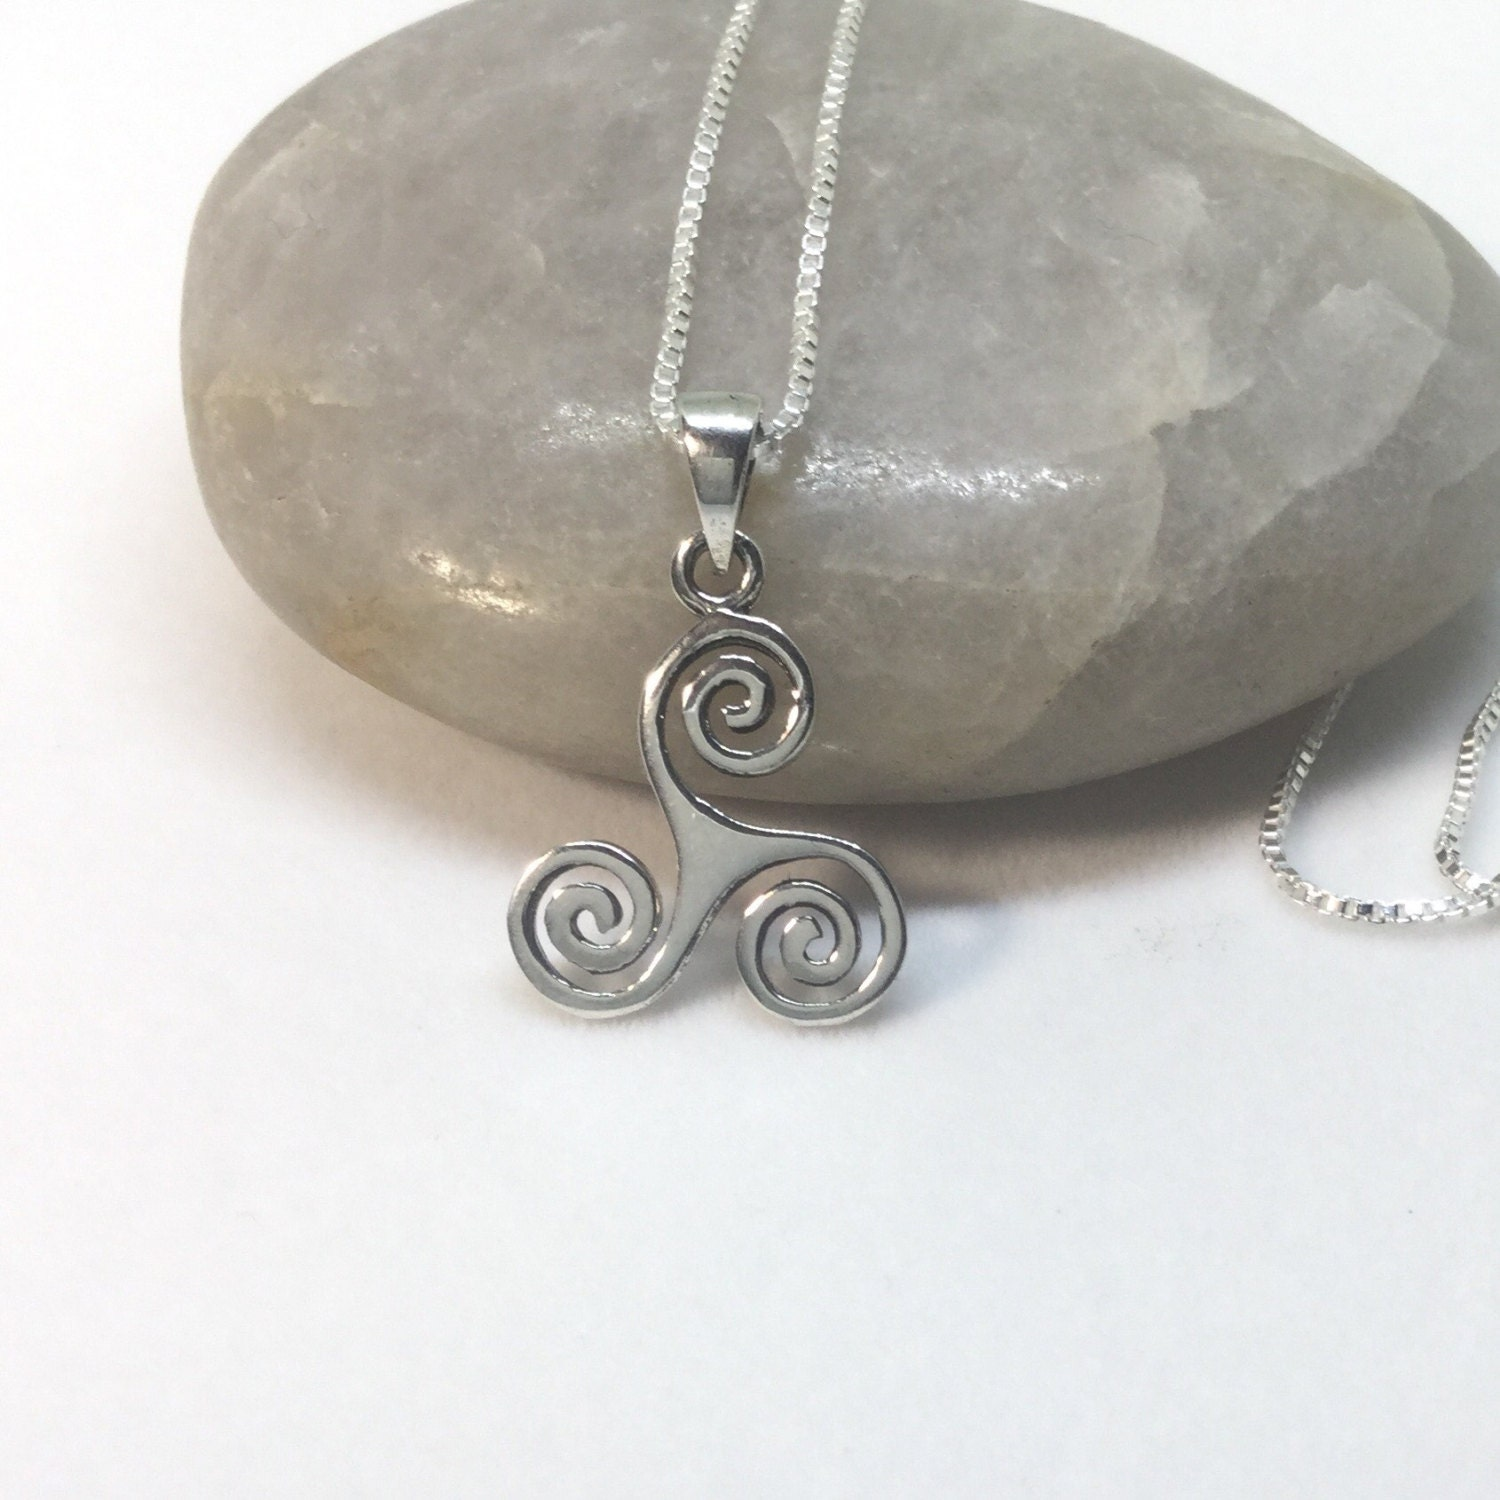 Triskele necklace sterling silver celtic pendant triskele pendant triskele necklace sterling silver celtic pendant triskele pendant triskelion charm small silver triple spiral pendant celtic necklace mozeypictures Images